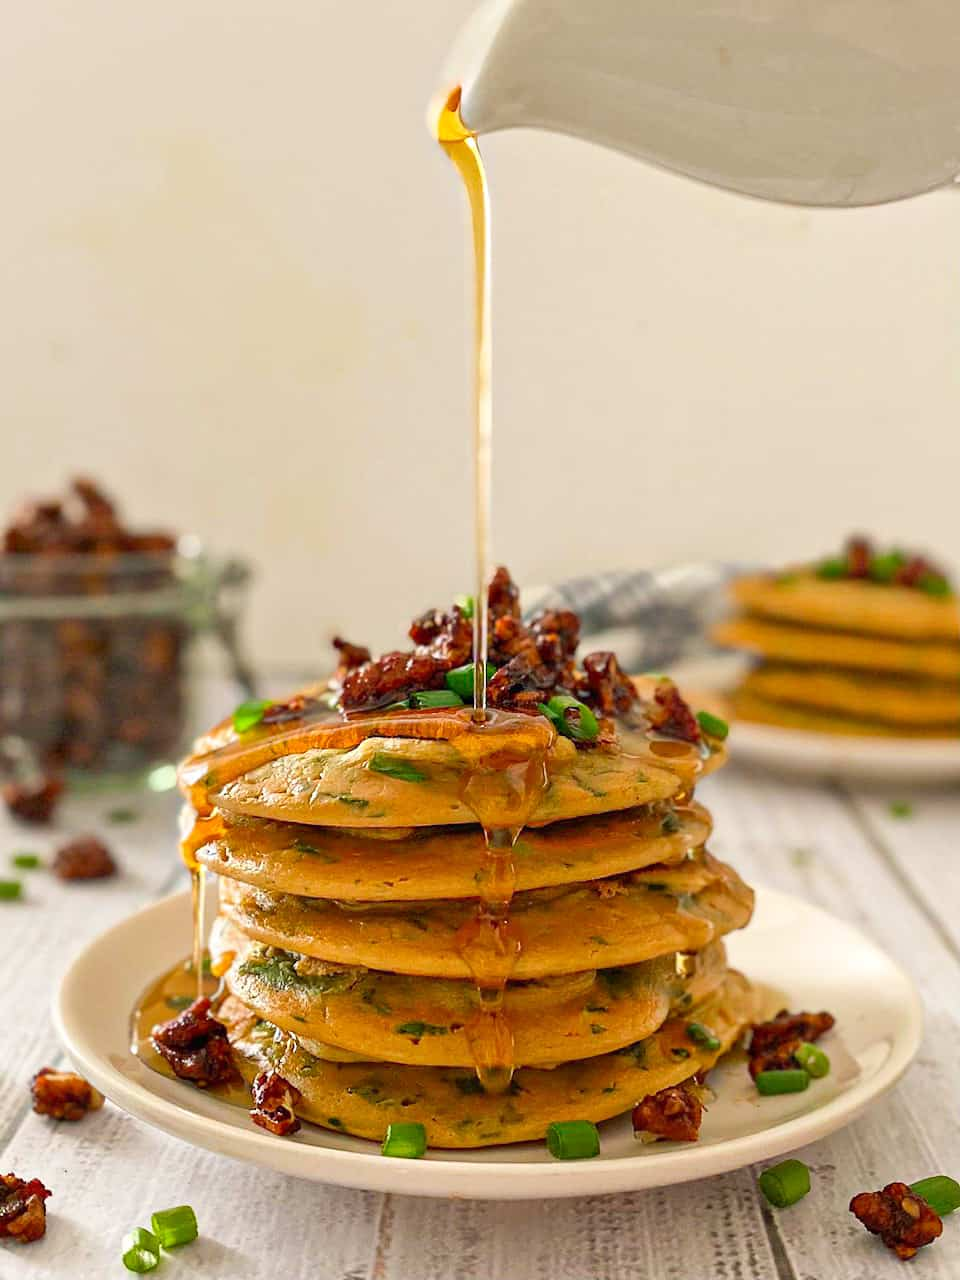 Stack of pancakes with bacon and chives on top and syrup dripping down.